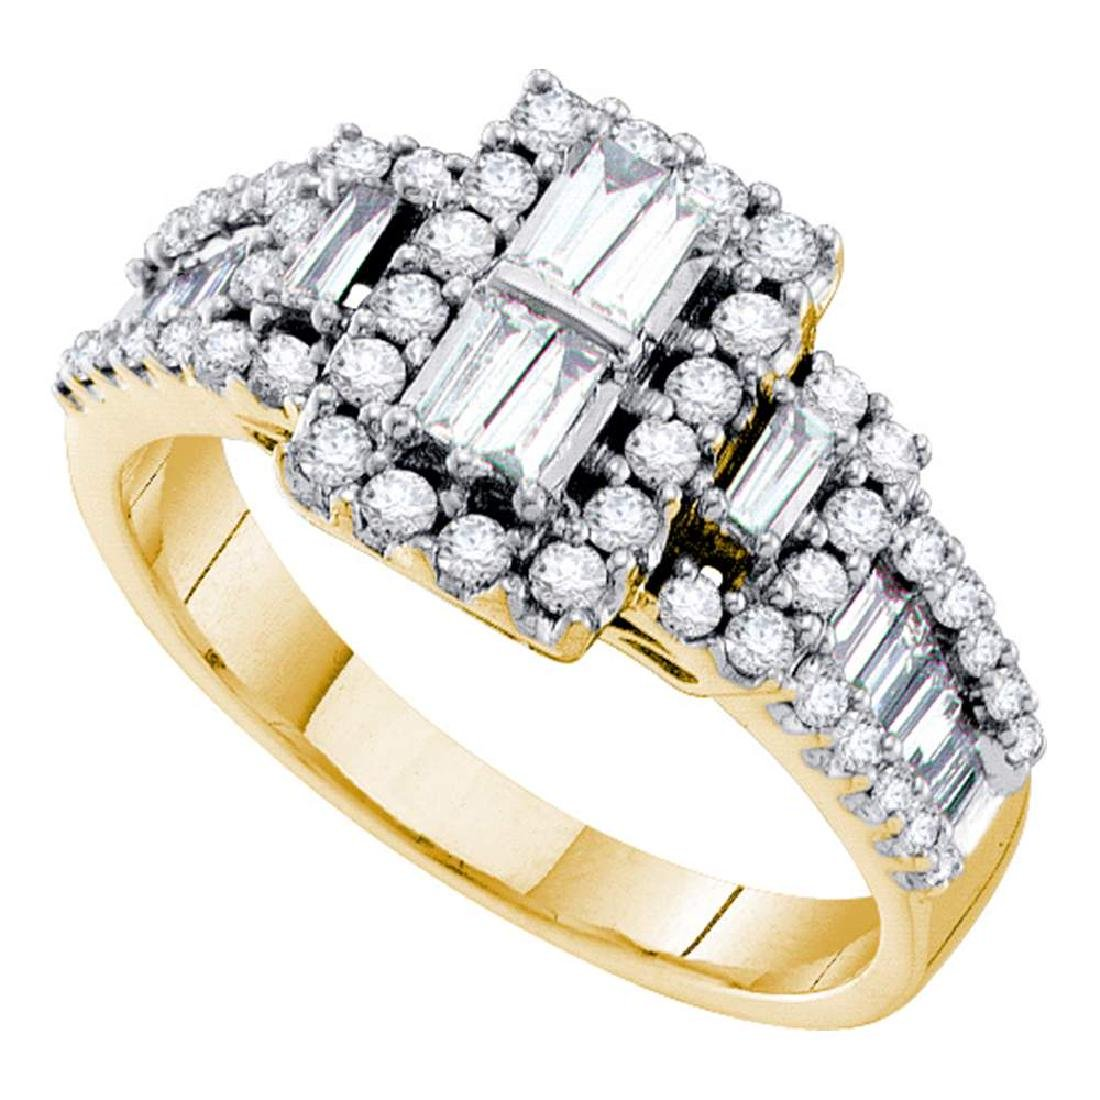 1 CTW Diamond Rectangle Cluster Ring 14KT Yellow Gold -